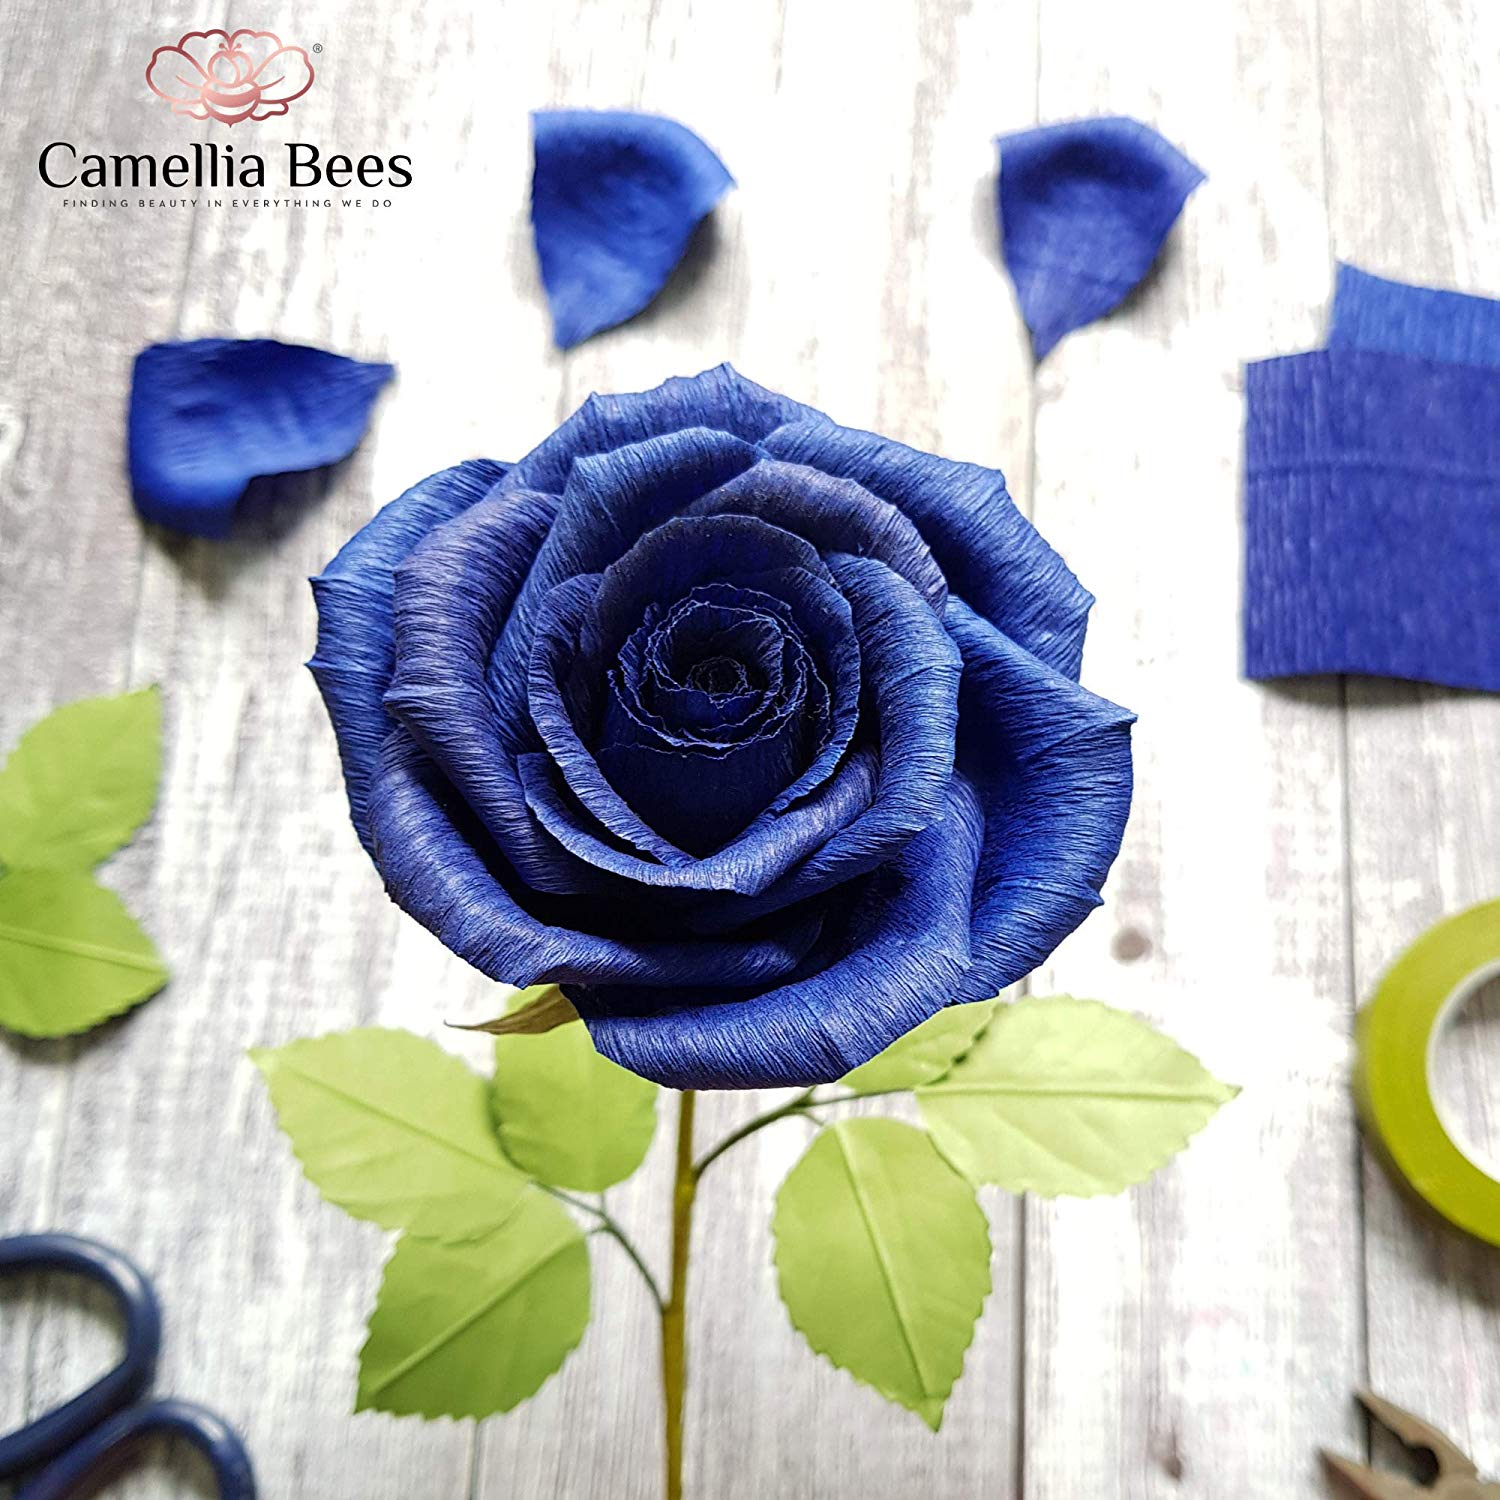 Blue Paper Rose Unique Anniversary Gift For Her Handmade Crepe Paper Flowers for Valentine Birthday Mother Day Christmas, Single Long Stem Real Looking, Royal navy blue rose